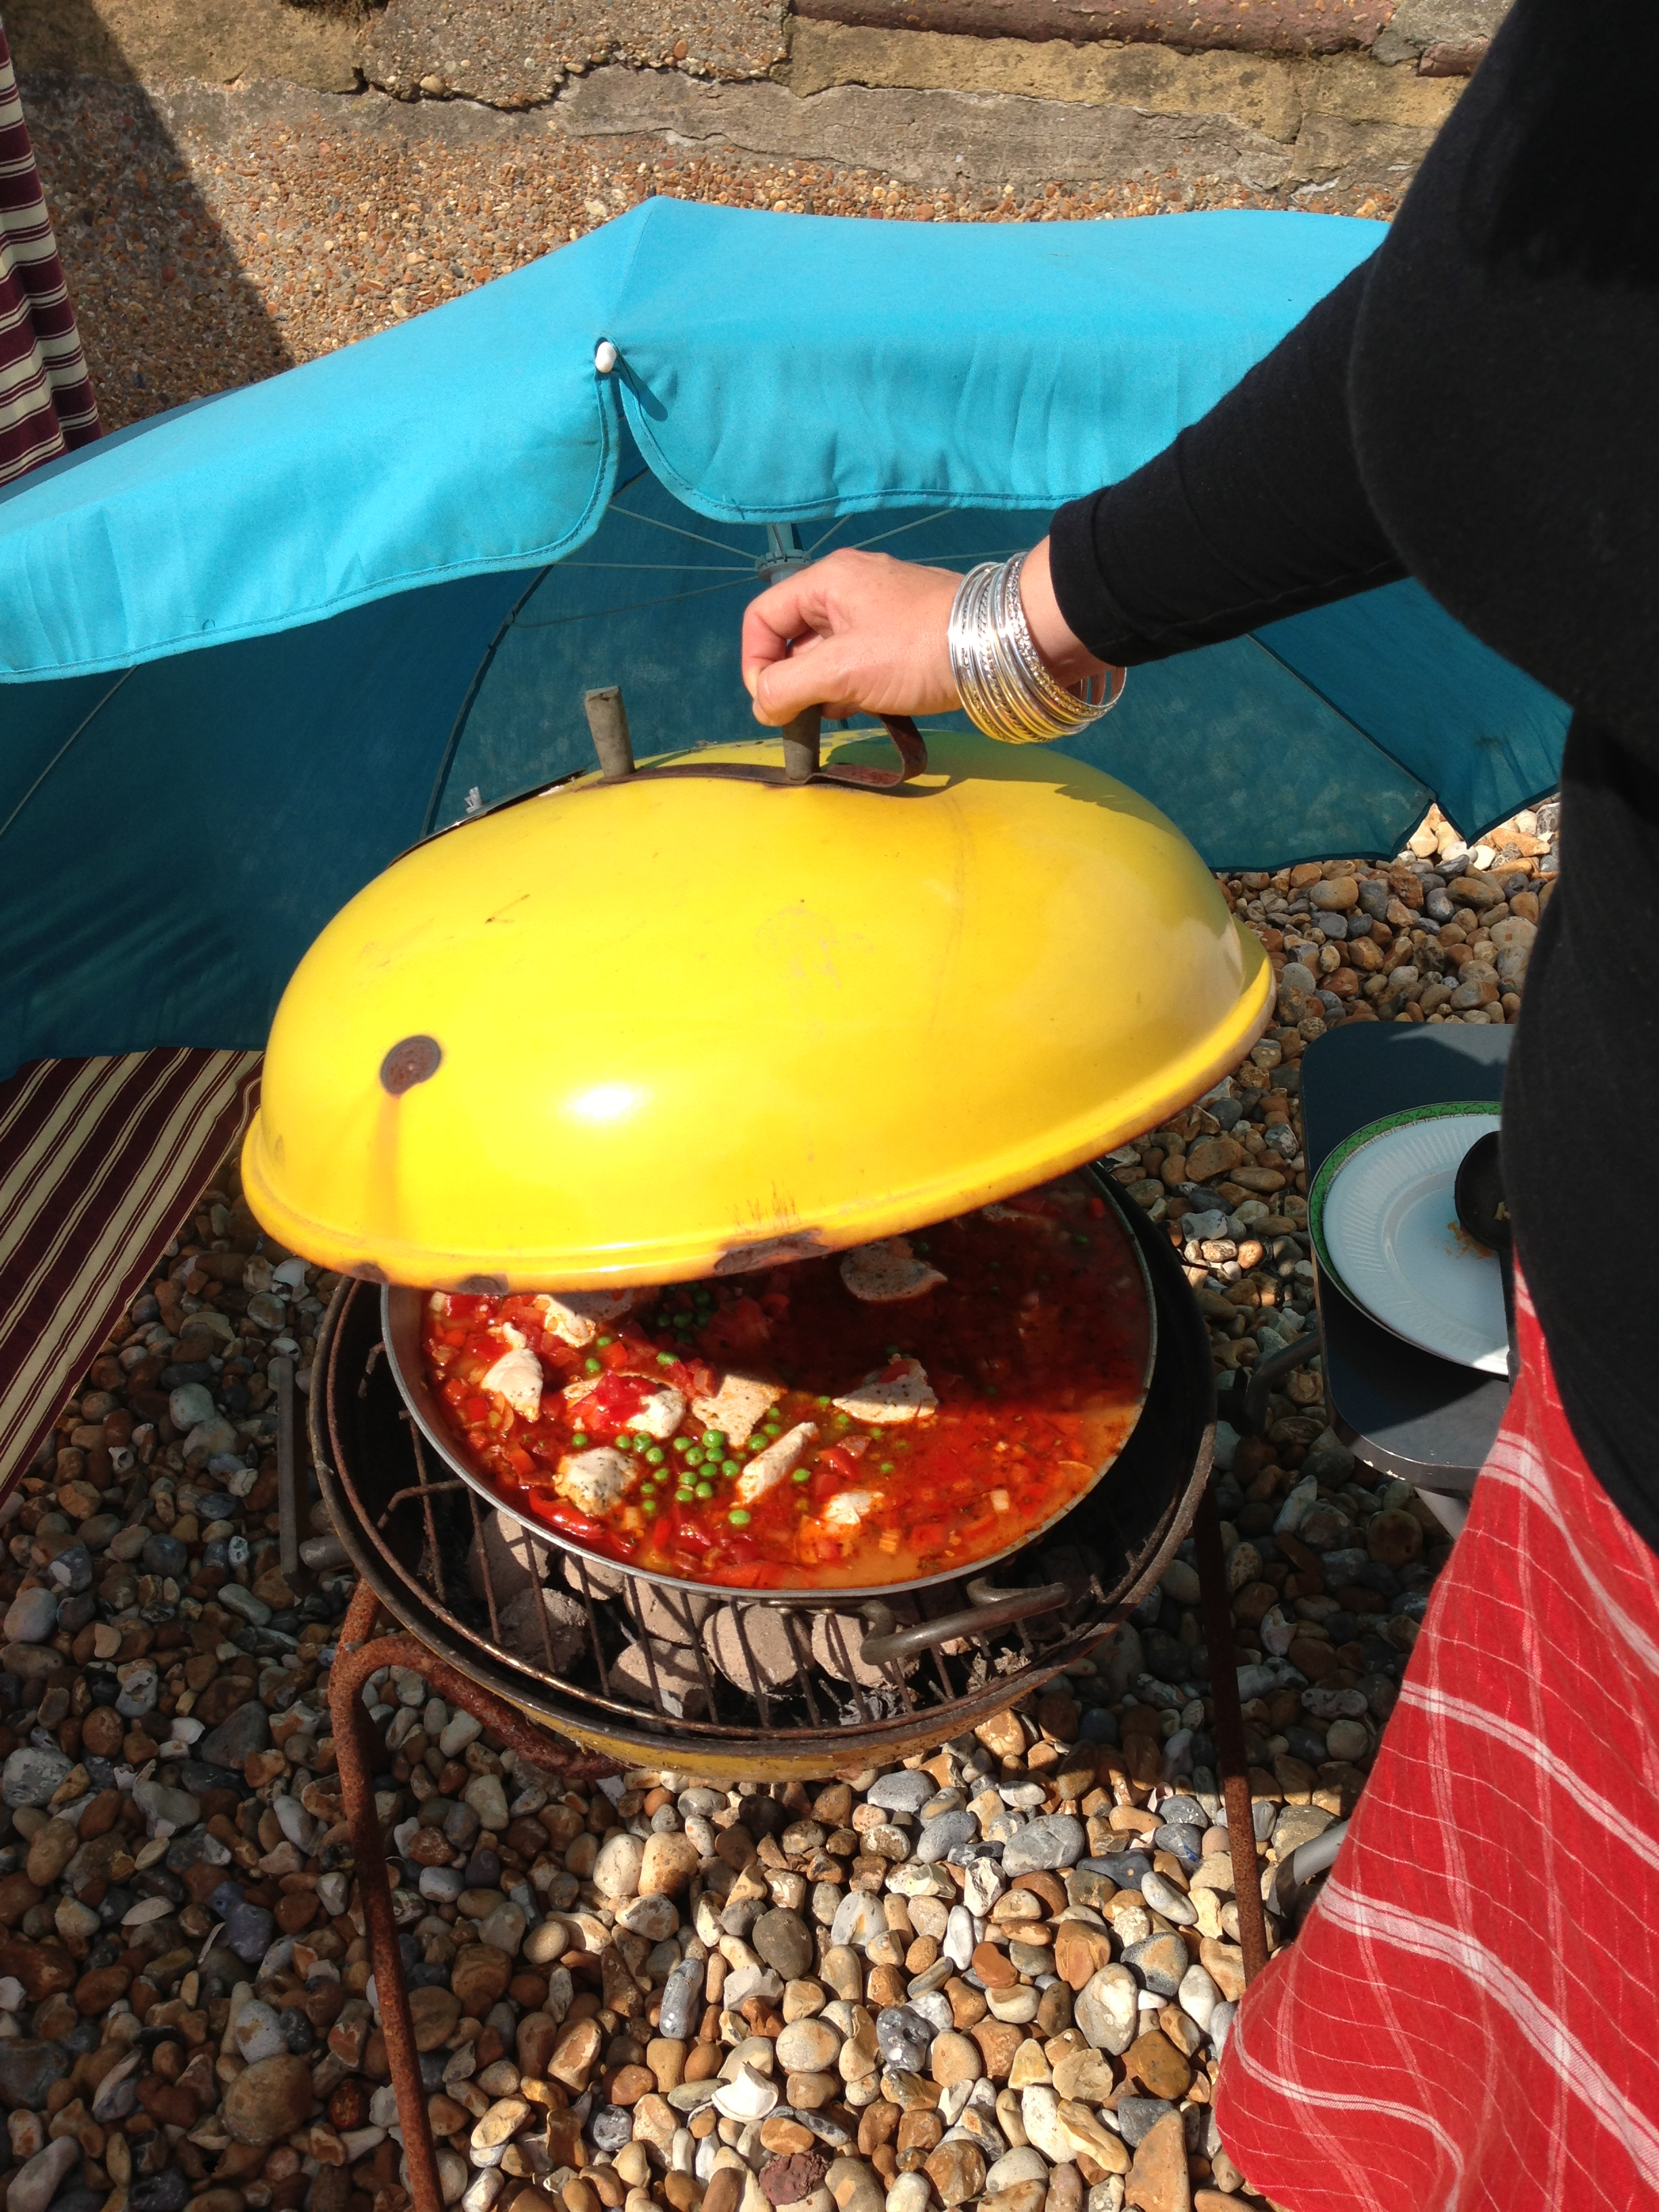 Beachhutcook's Paella booked on the Barbecue on the Beach